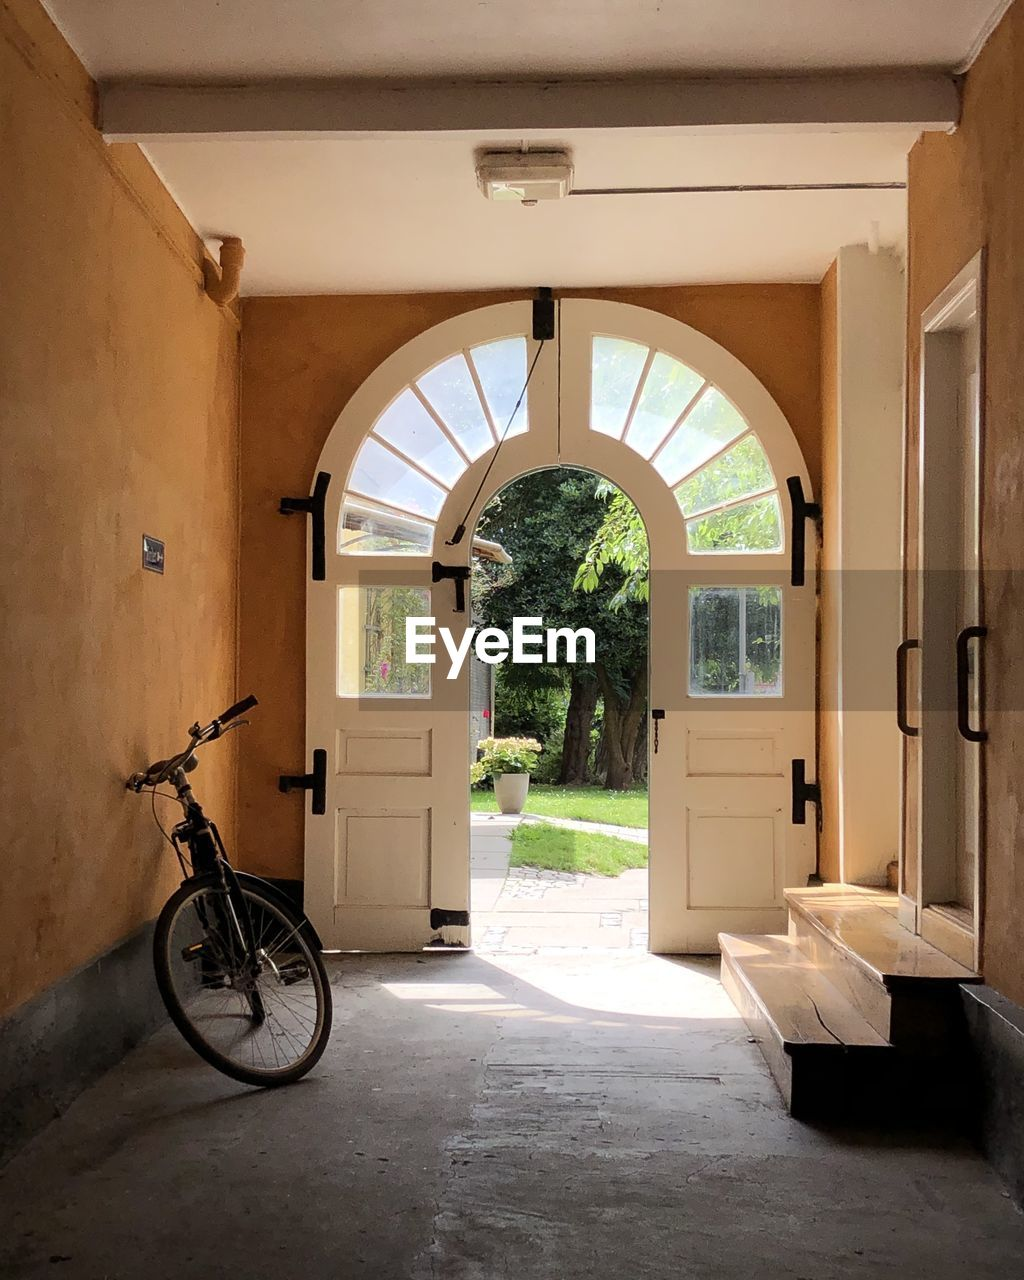 arch, architecture, built structure, bicycle, entrance, building, door, day, building exterior, plant, no people, nature, transportation, land vehicle, sunlight, potted plant, outdoors, wall - building feature, mode of transportation, flooring, architectural column, courtyard